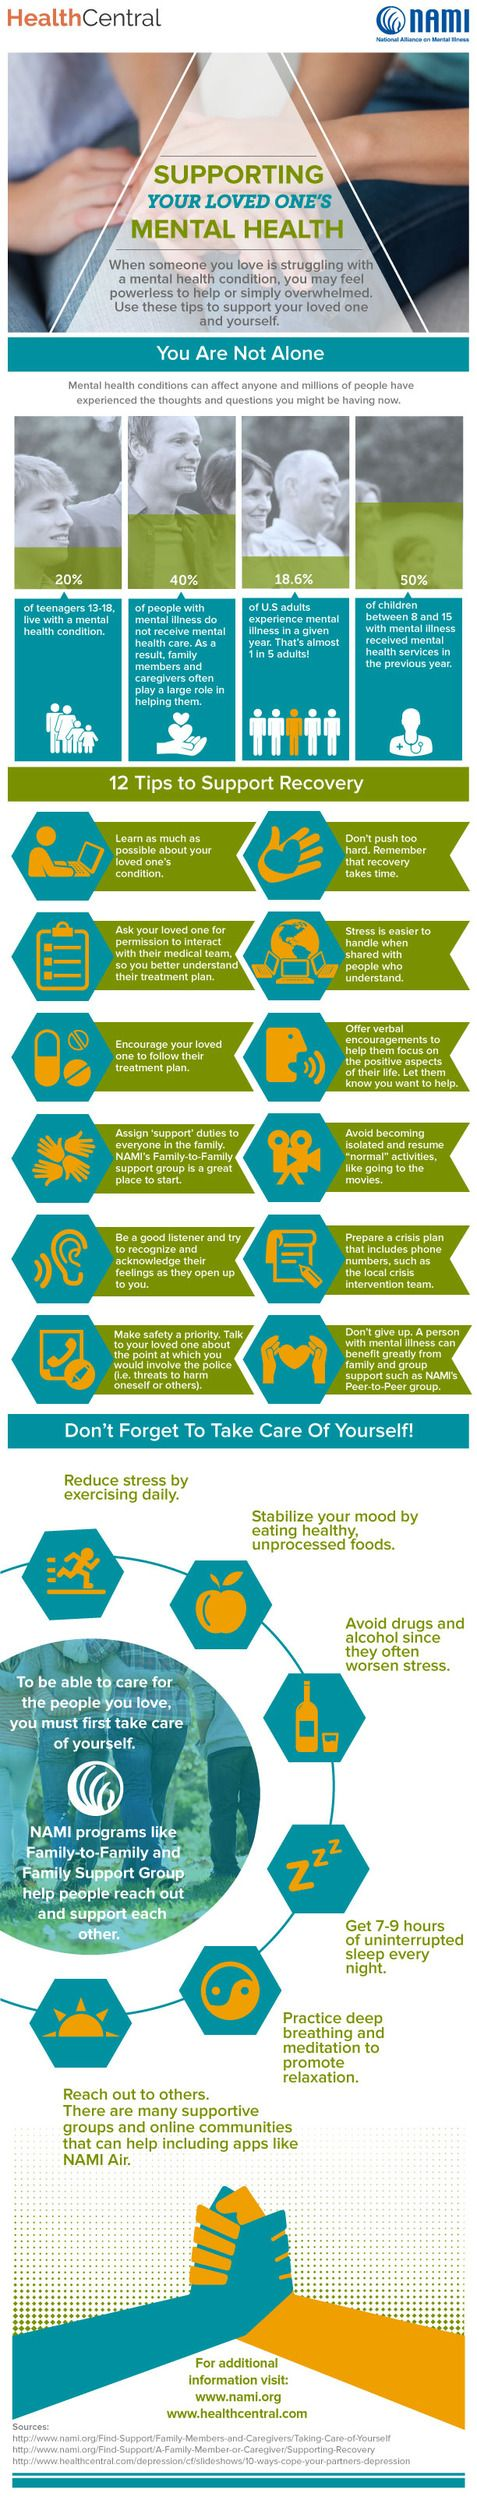 (INFOGRAPHIC) Supporting Your Loved One's Mental Health w/ @officialnami   #MentalHealthMonth